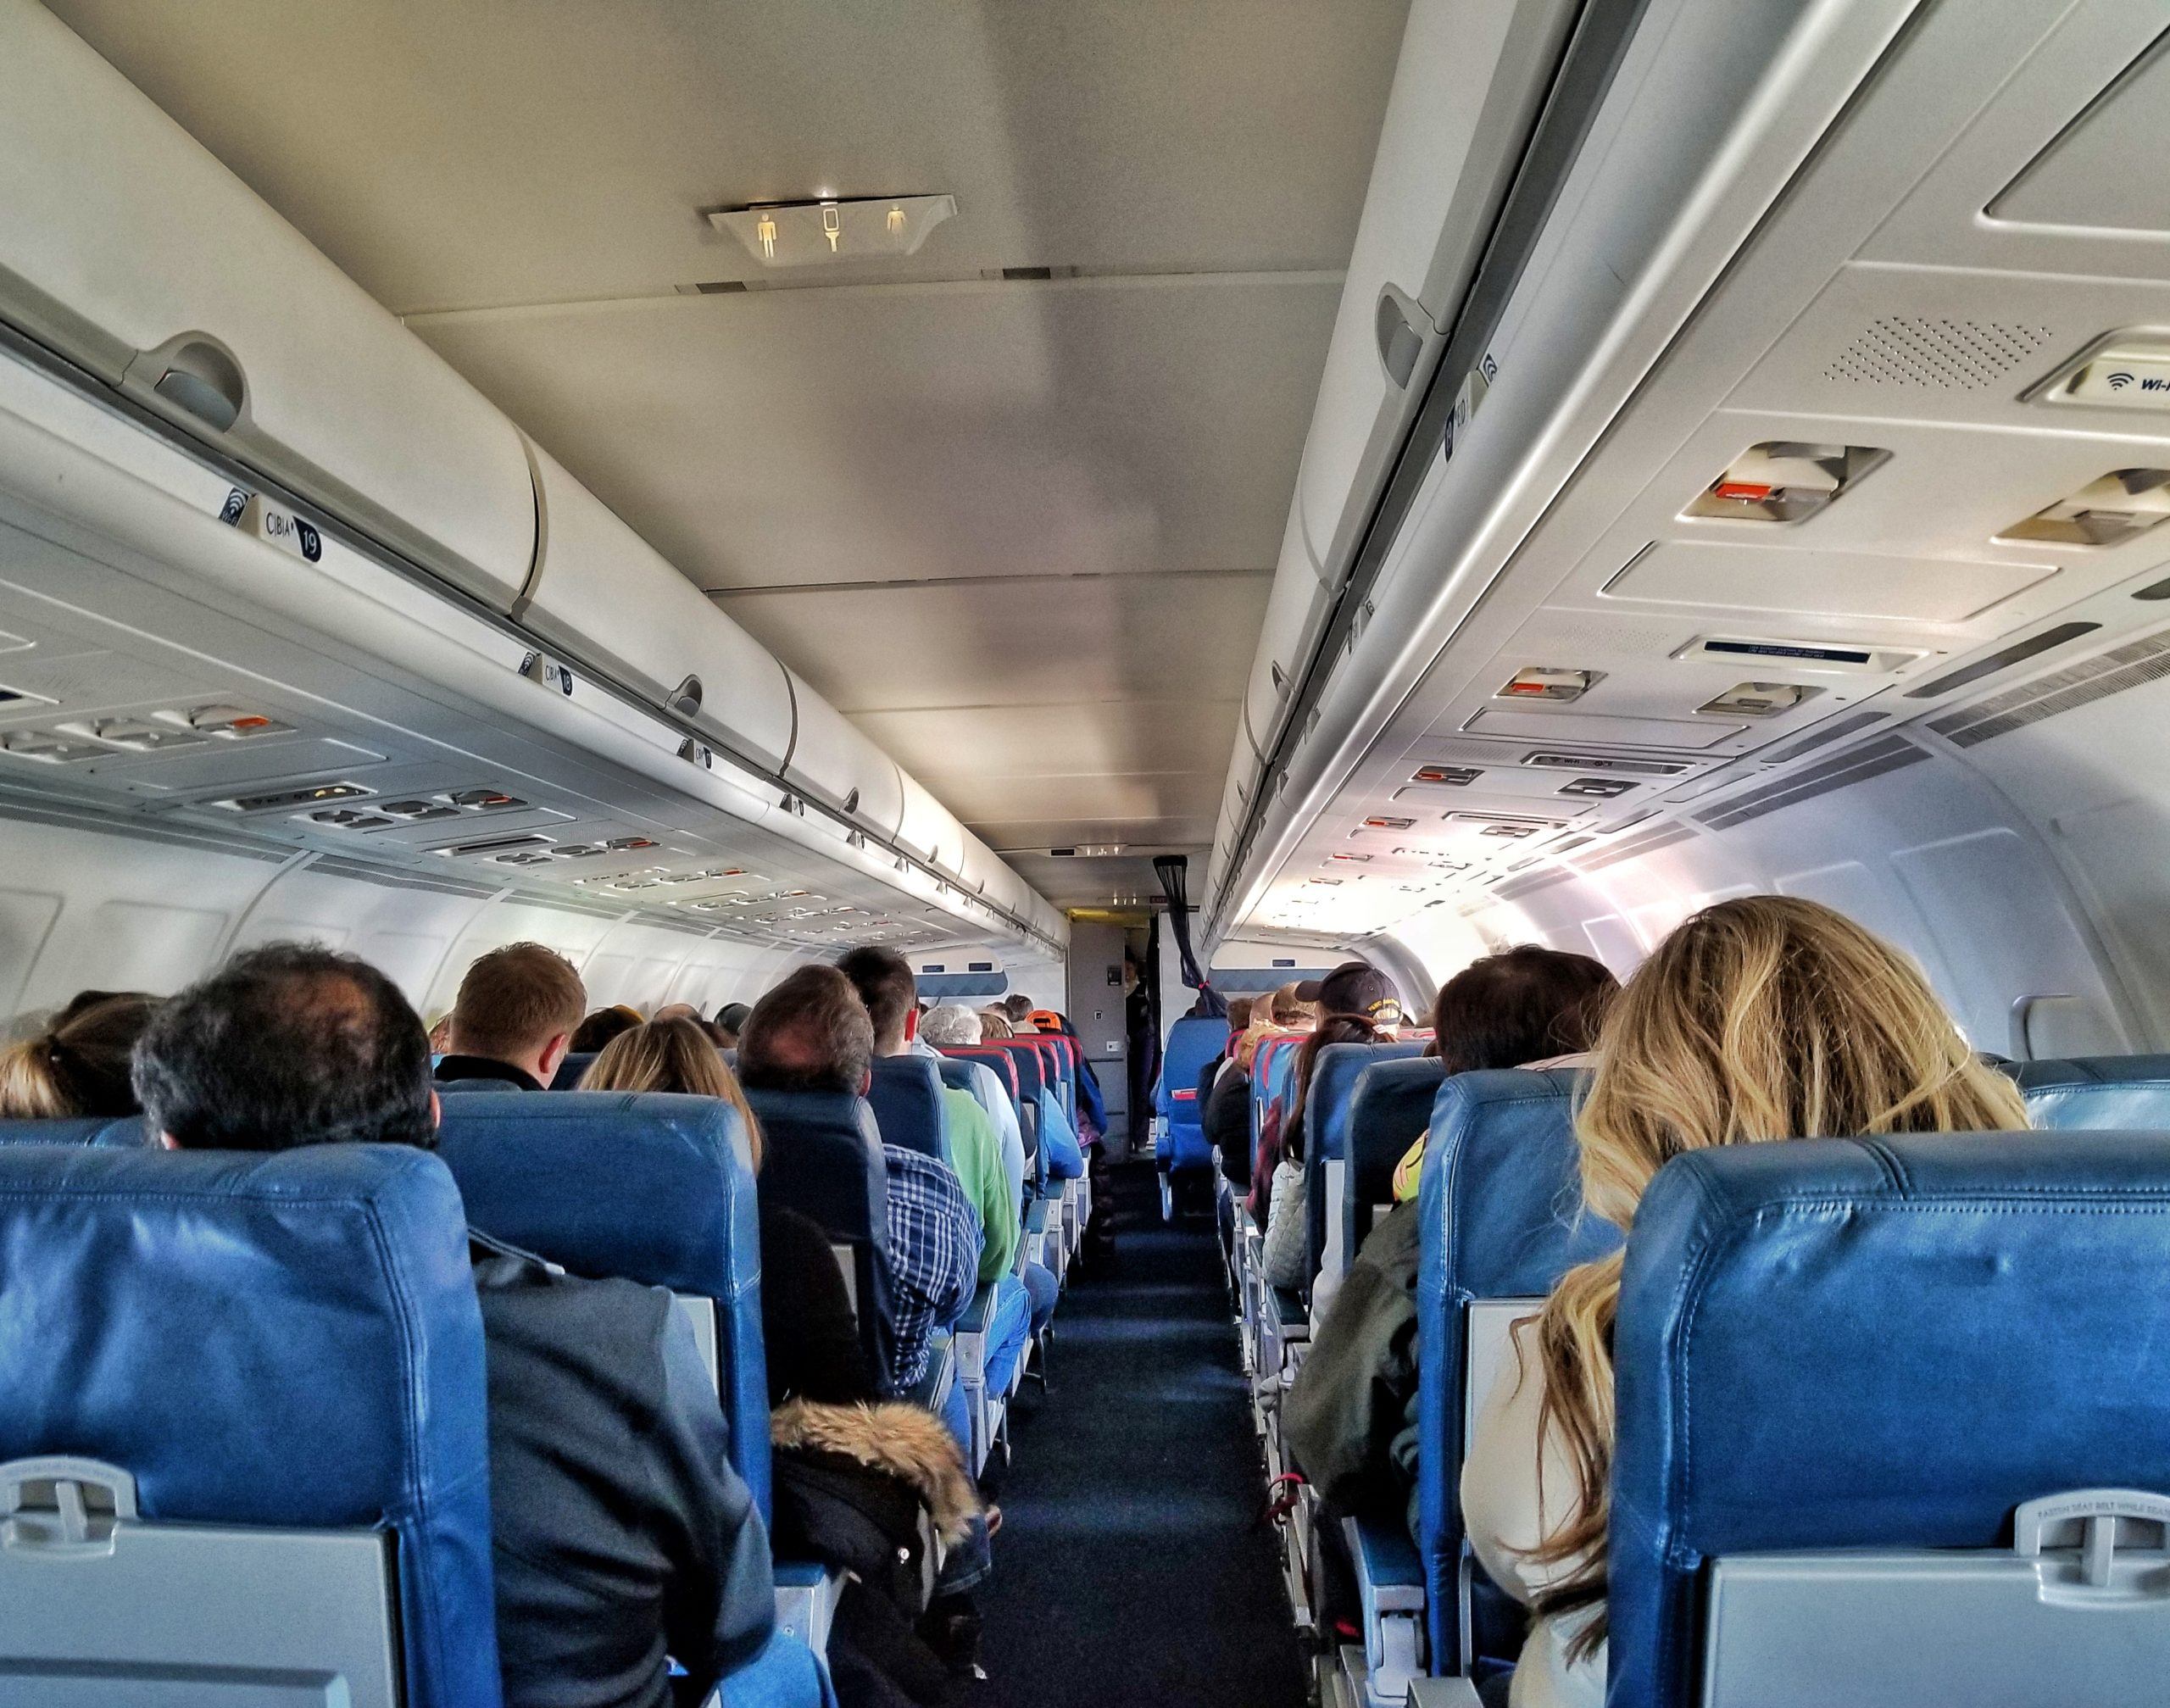 Image of people inside a plane